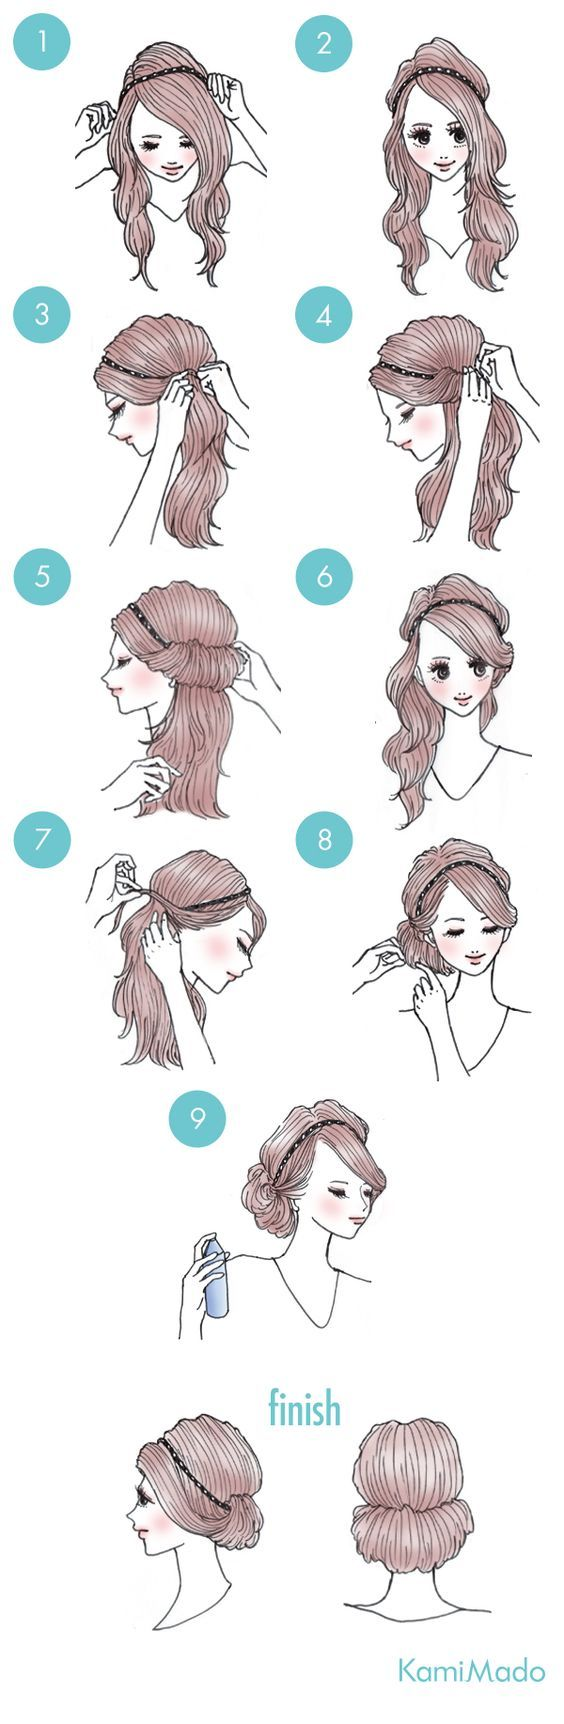 Pin by vane qf on peinados pinterest easy hair style and makeup